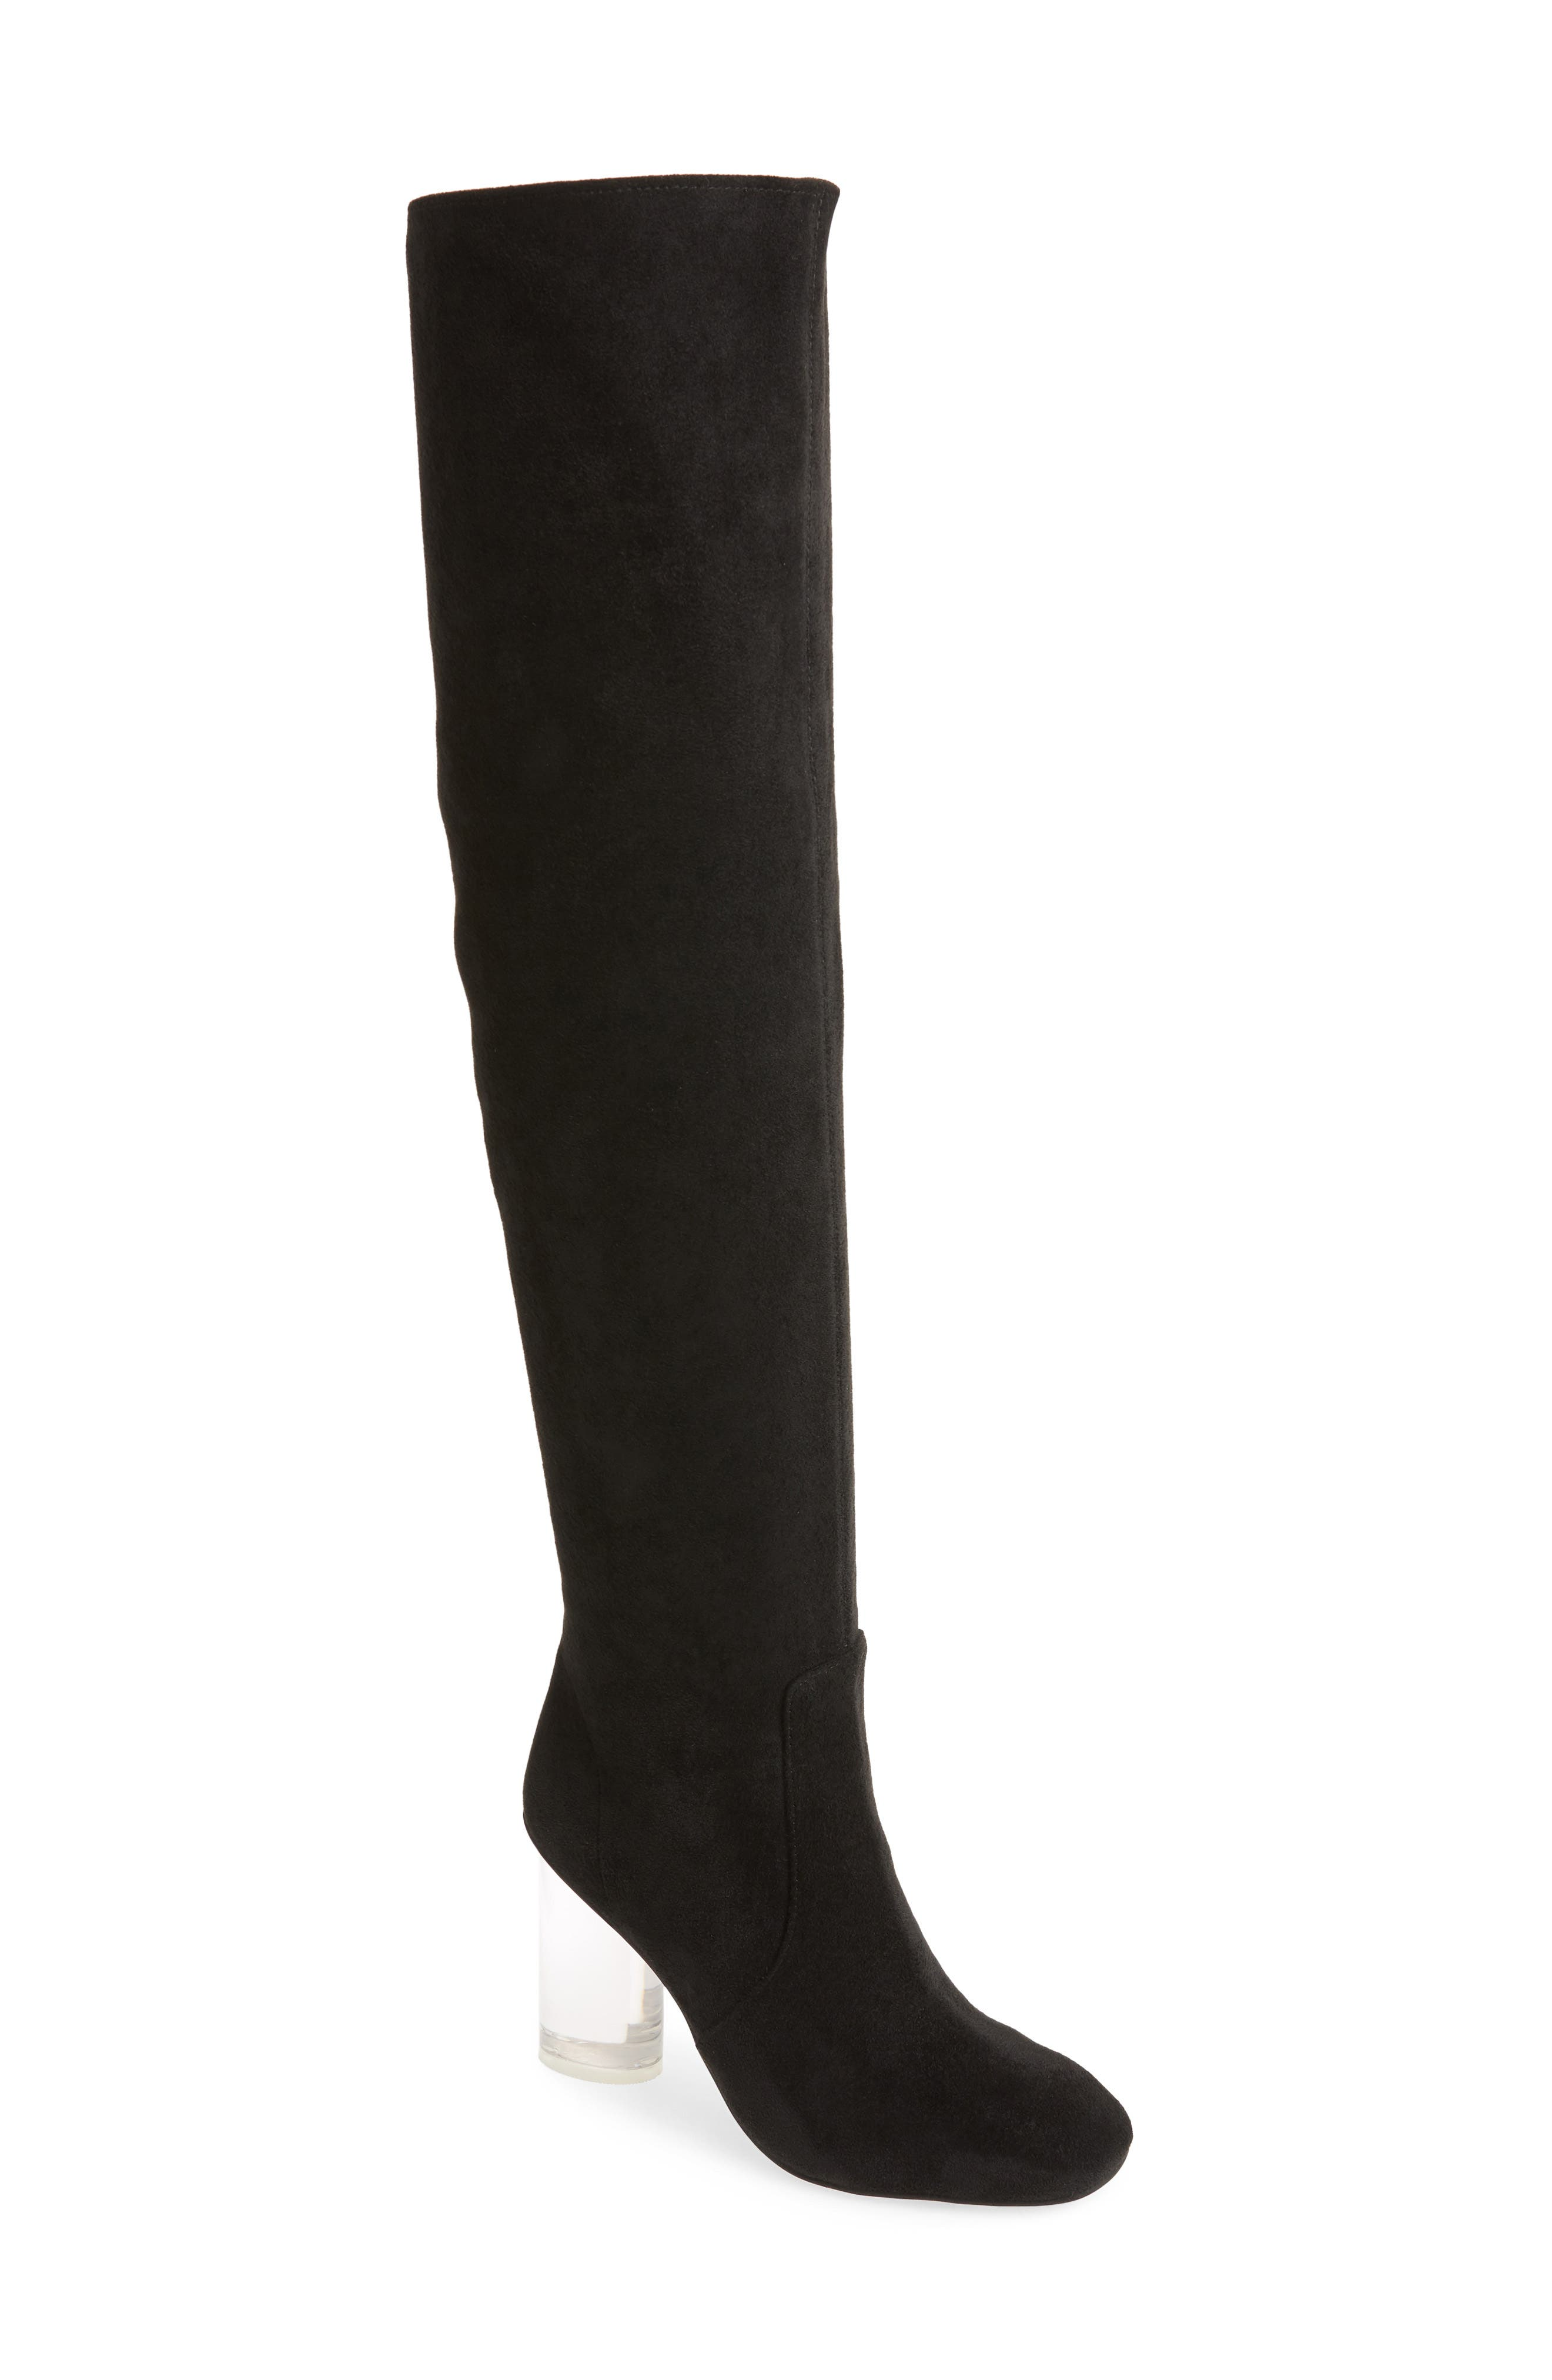 Jeffrey Campbell Perou-Lh Over The Knee Boot, Black